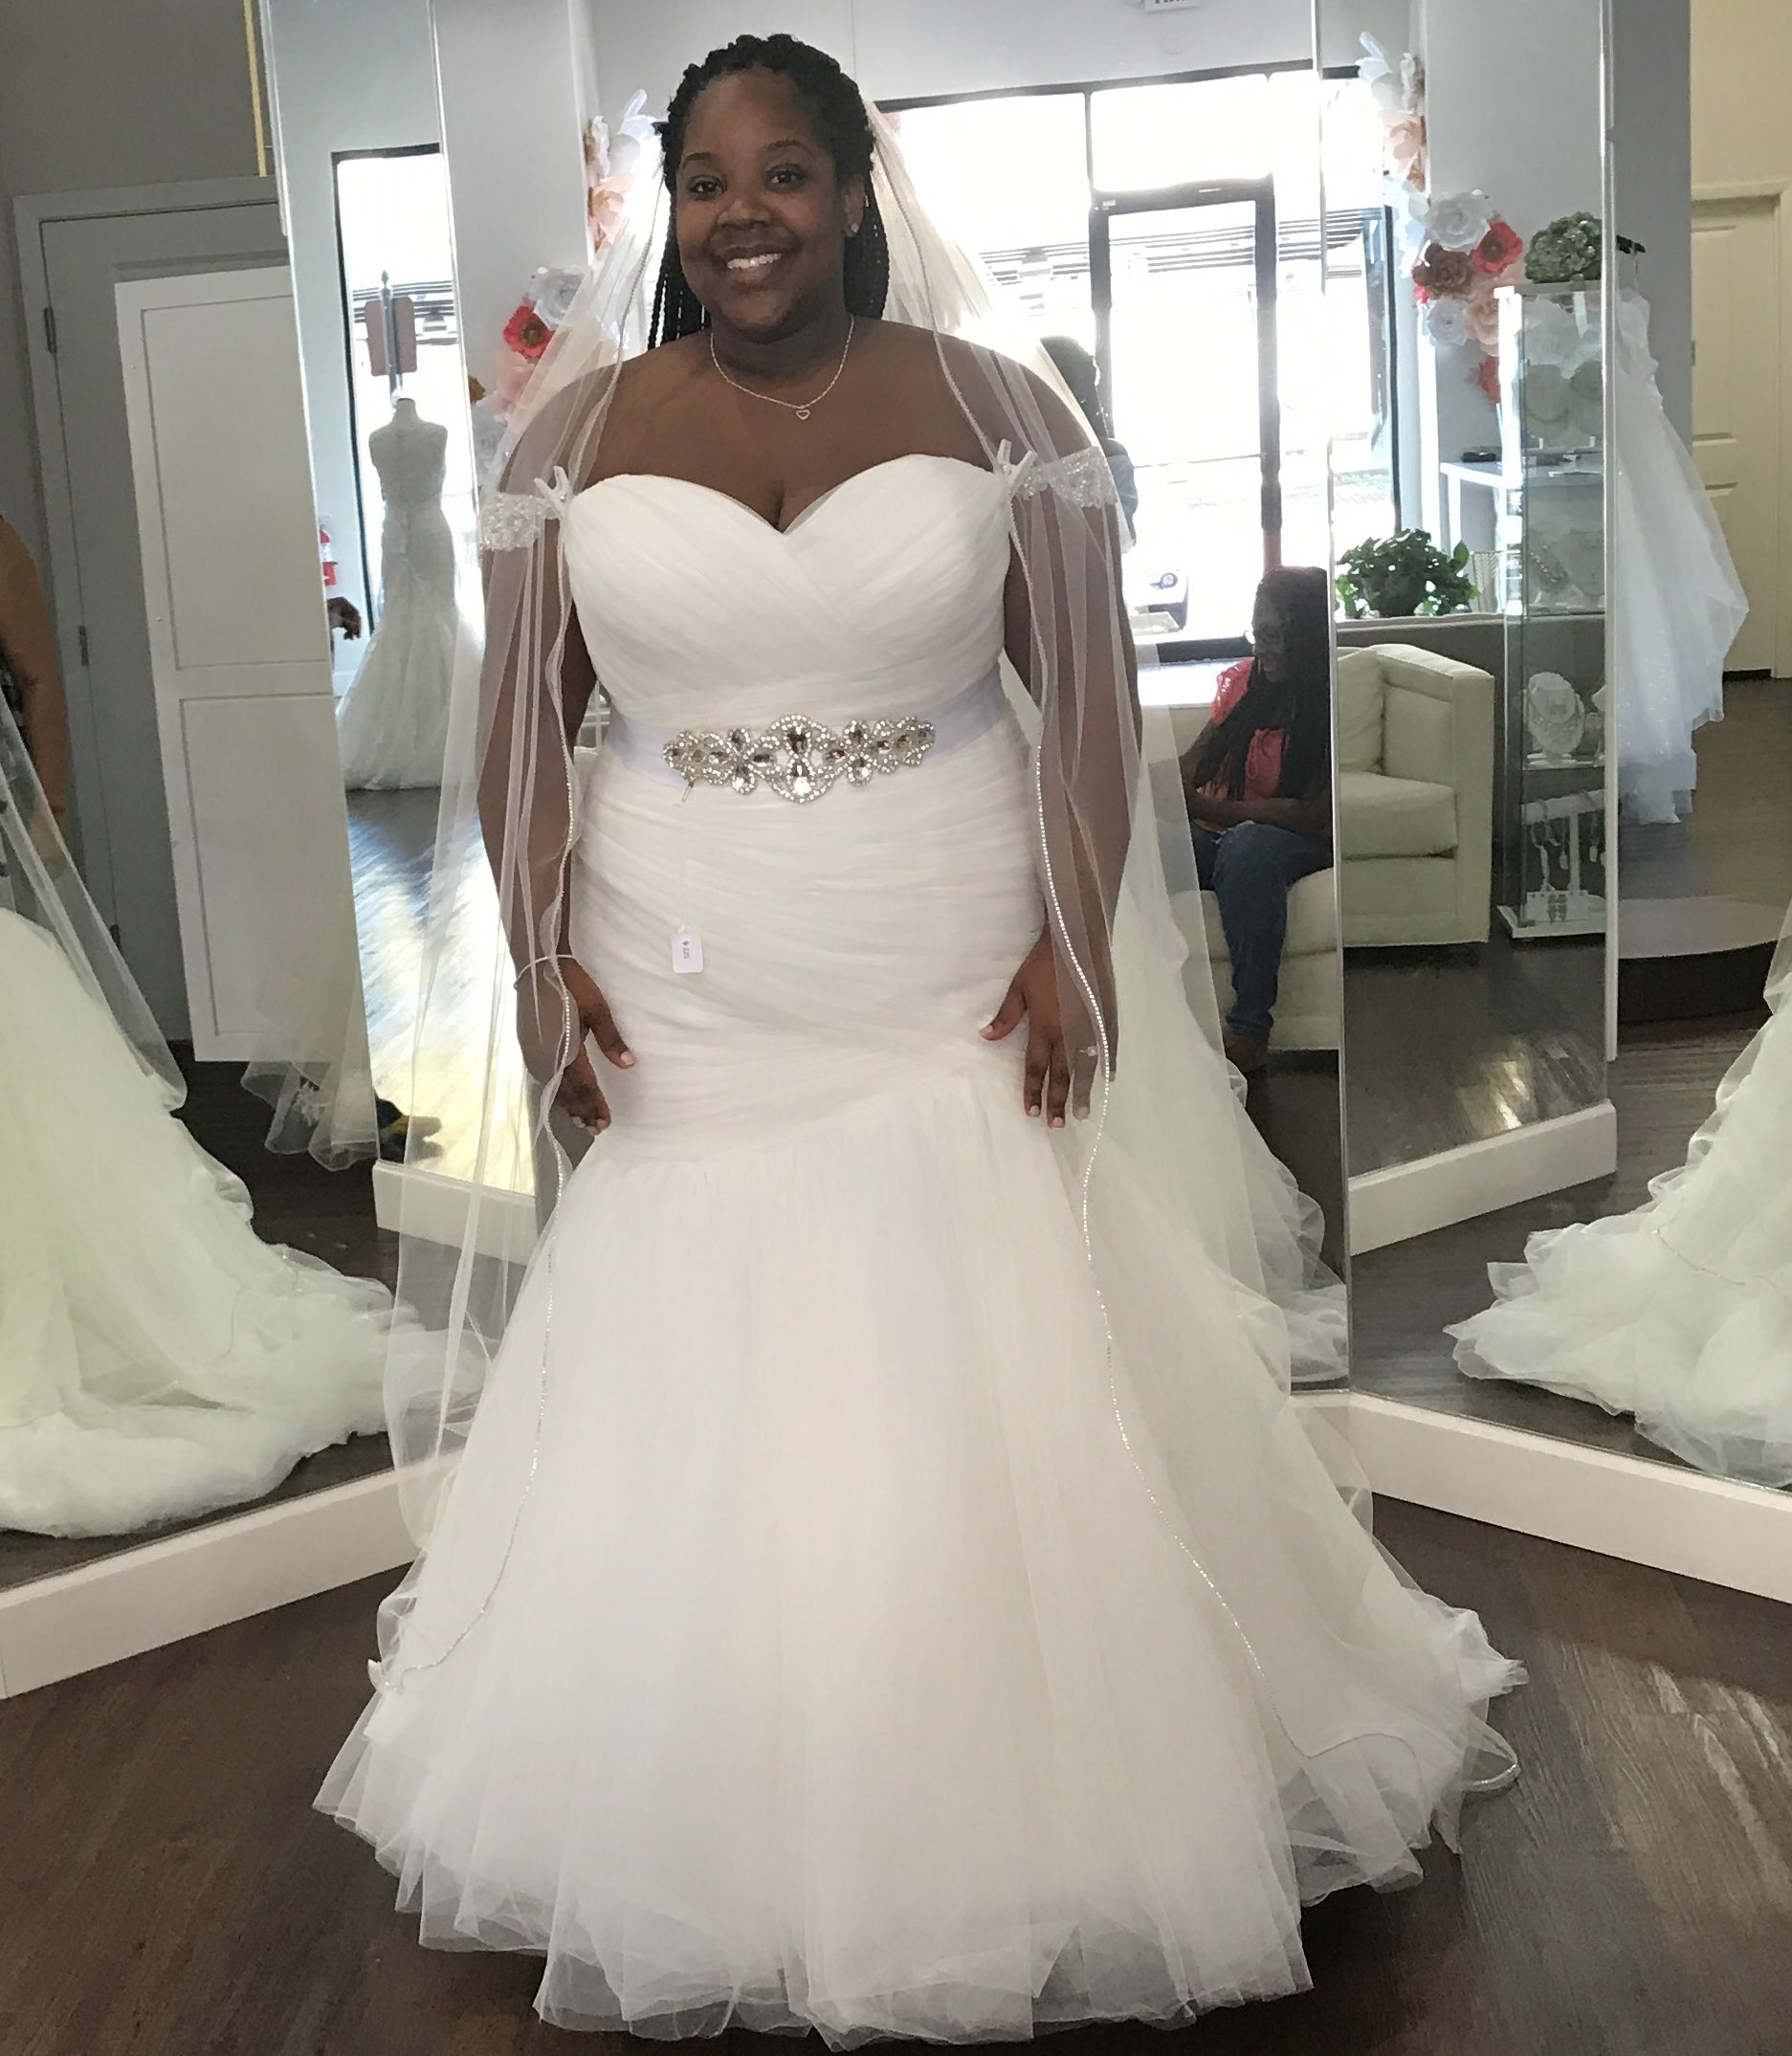 Strapless Plus Size Fit N Flare Wedding Dress From Darius Bridal Plus Size Bridal Dresses Wedding Dresses Plus Size Plus Wedding Dresses [ 2149 x 1873 Pixel ]